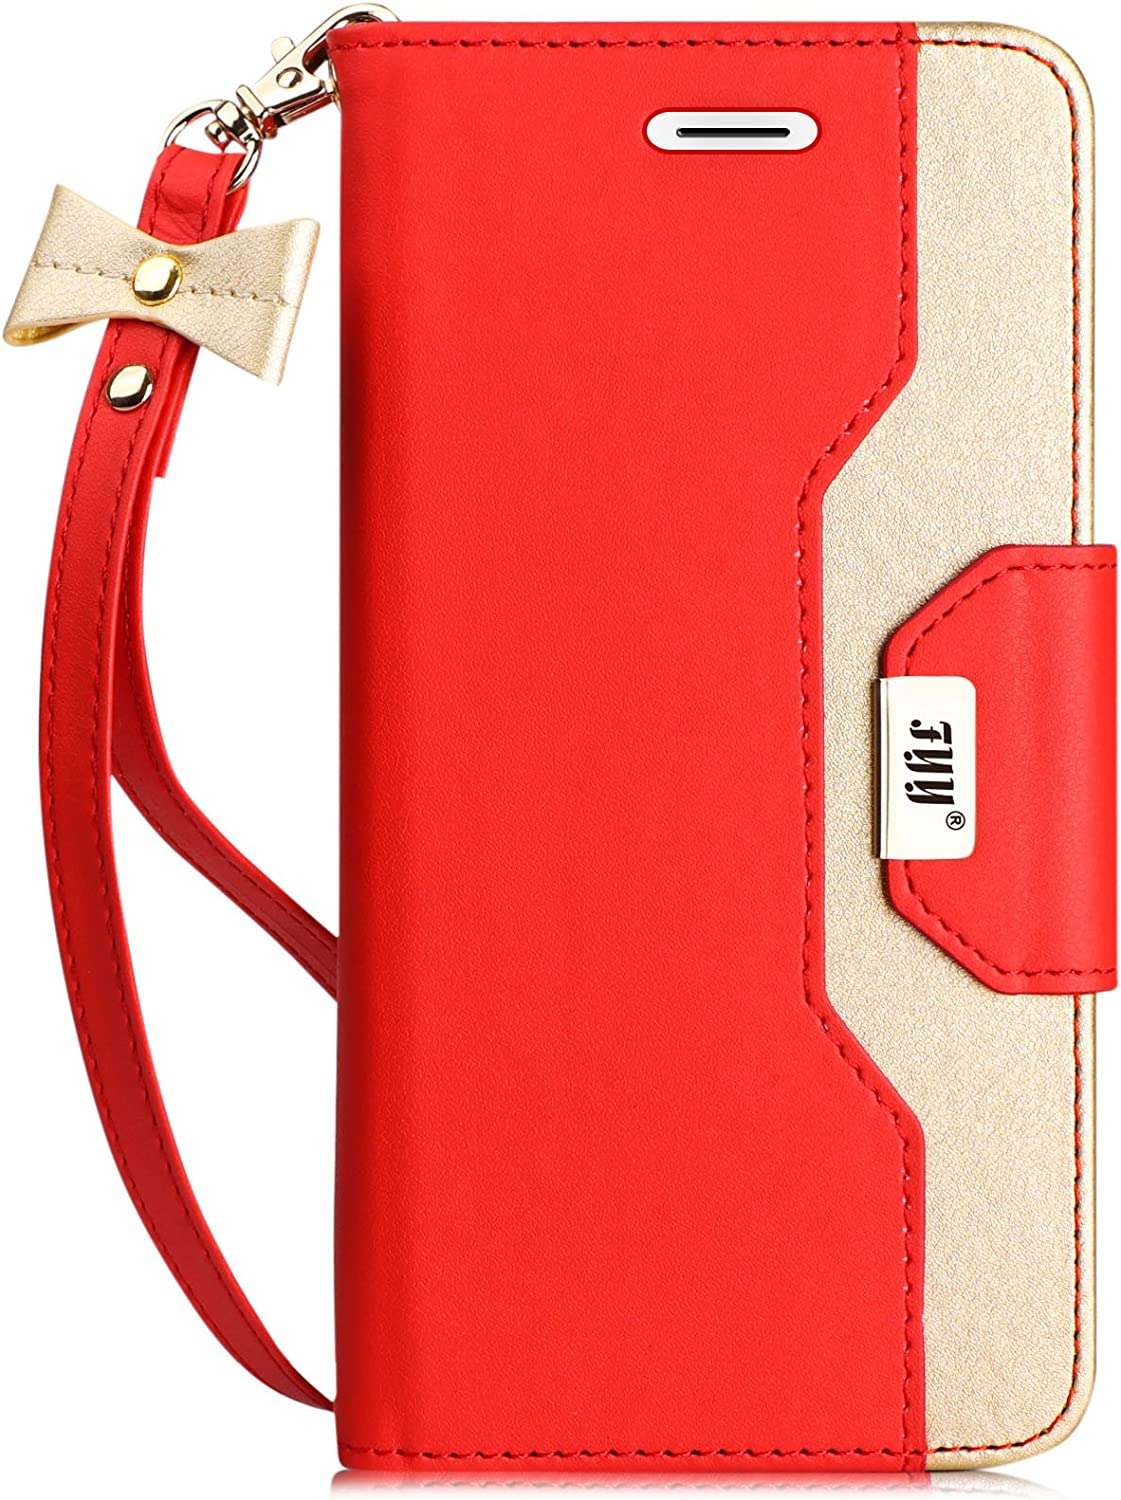 FYY Leather Case with Mirror for iPhone 6S/iPhone 6, Leather Wallet Flip Folio Case with Mirror and Wrist Strap for iPhone 6S/iPhone 6 Red